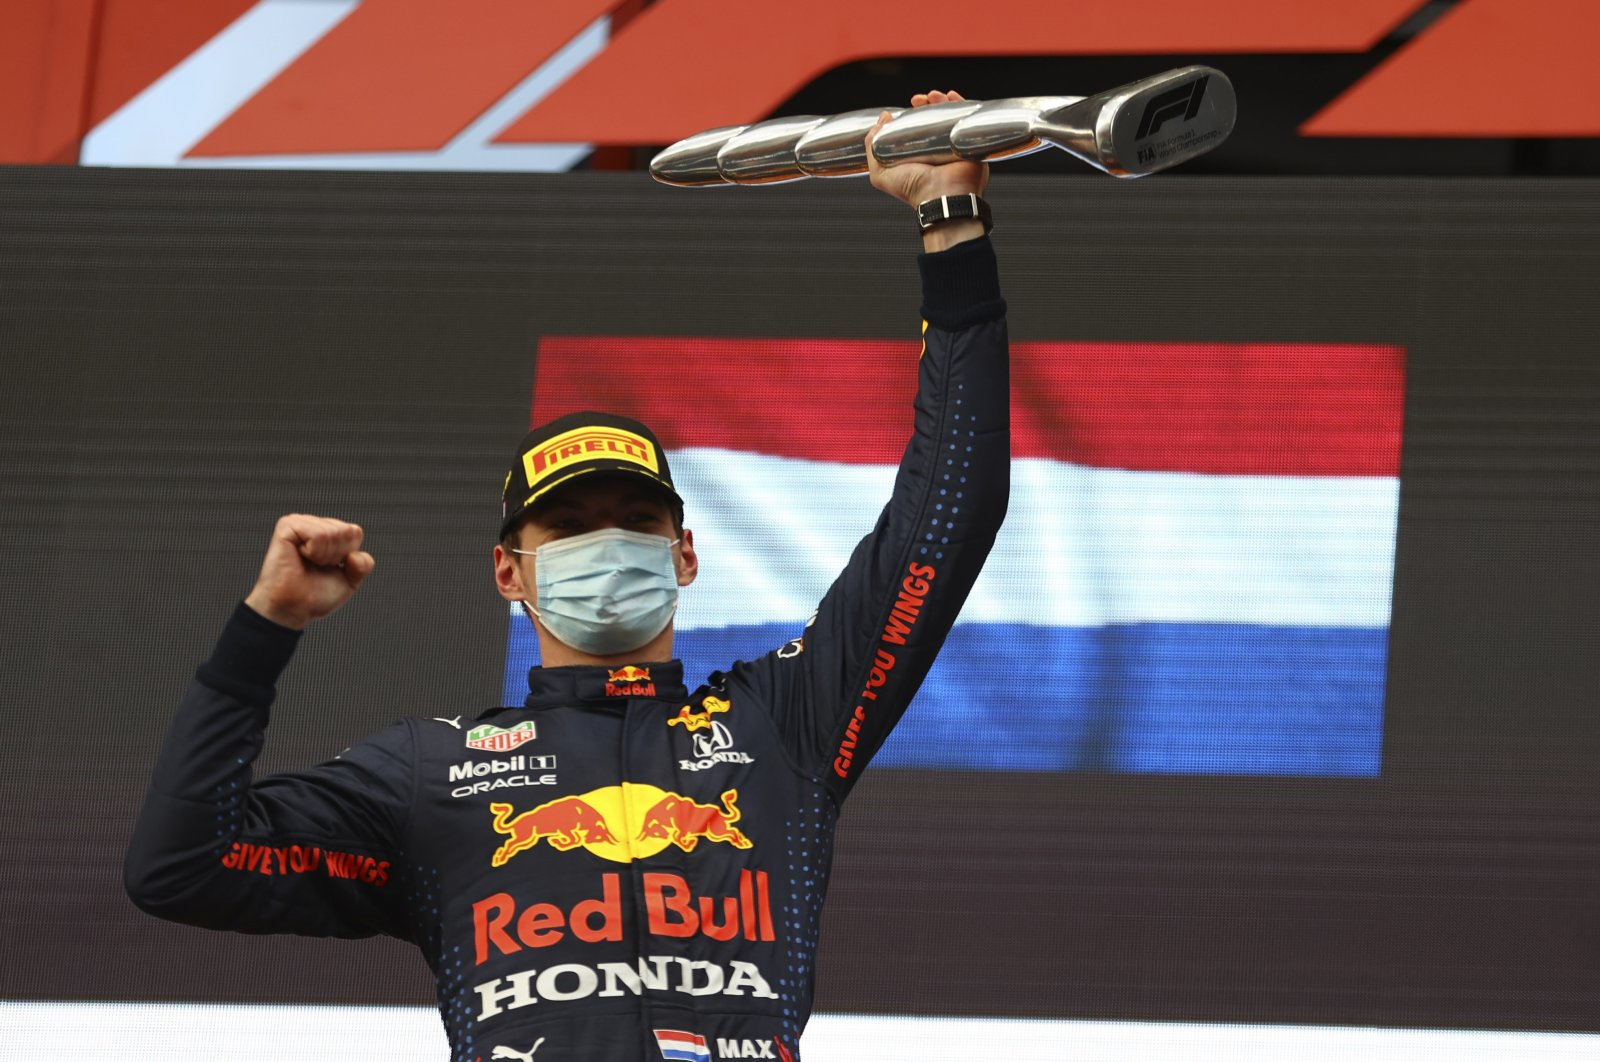 Red Bull's Max Verstappen celebrates on the podium at the end of the Emilia-Romagna Formula One Grand Prix, at the Imola racetrack, Italy, April 18, 2021. (AP Photo)